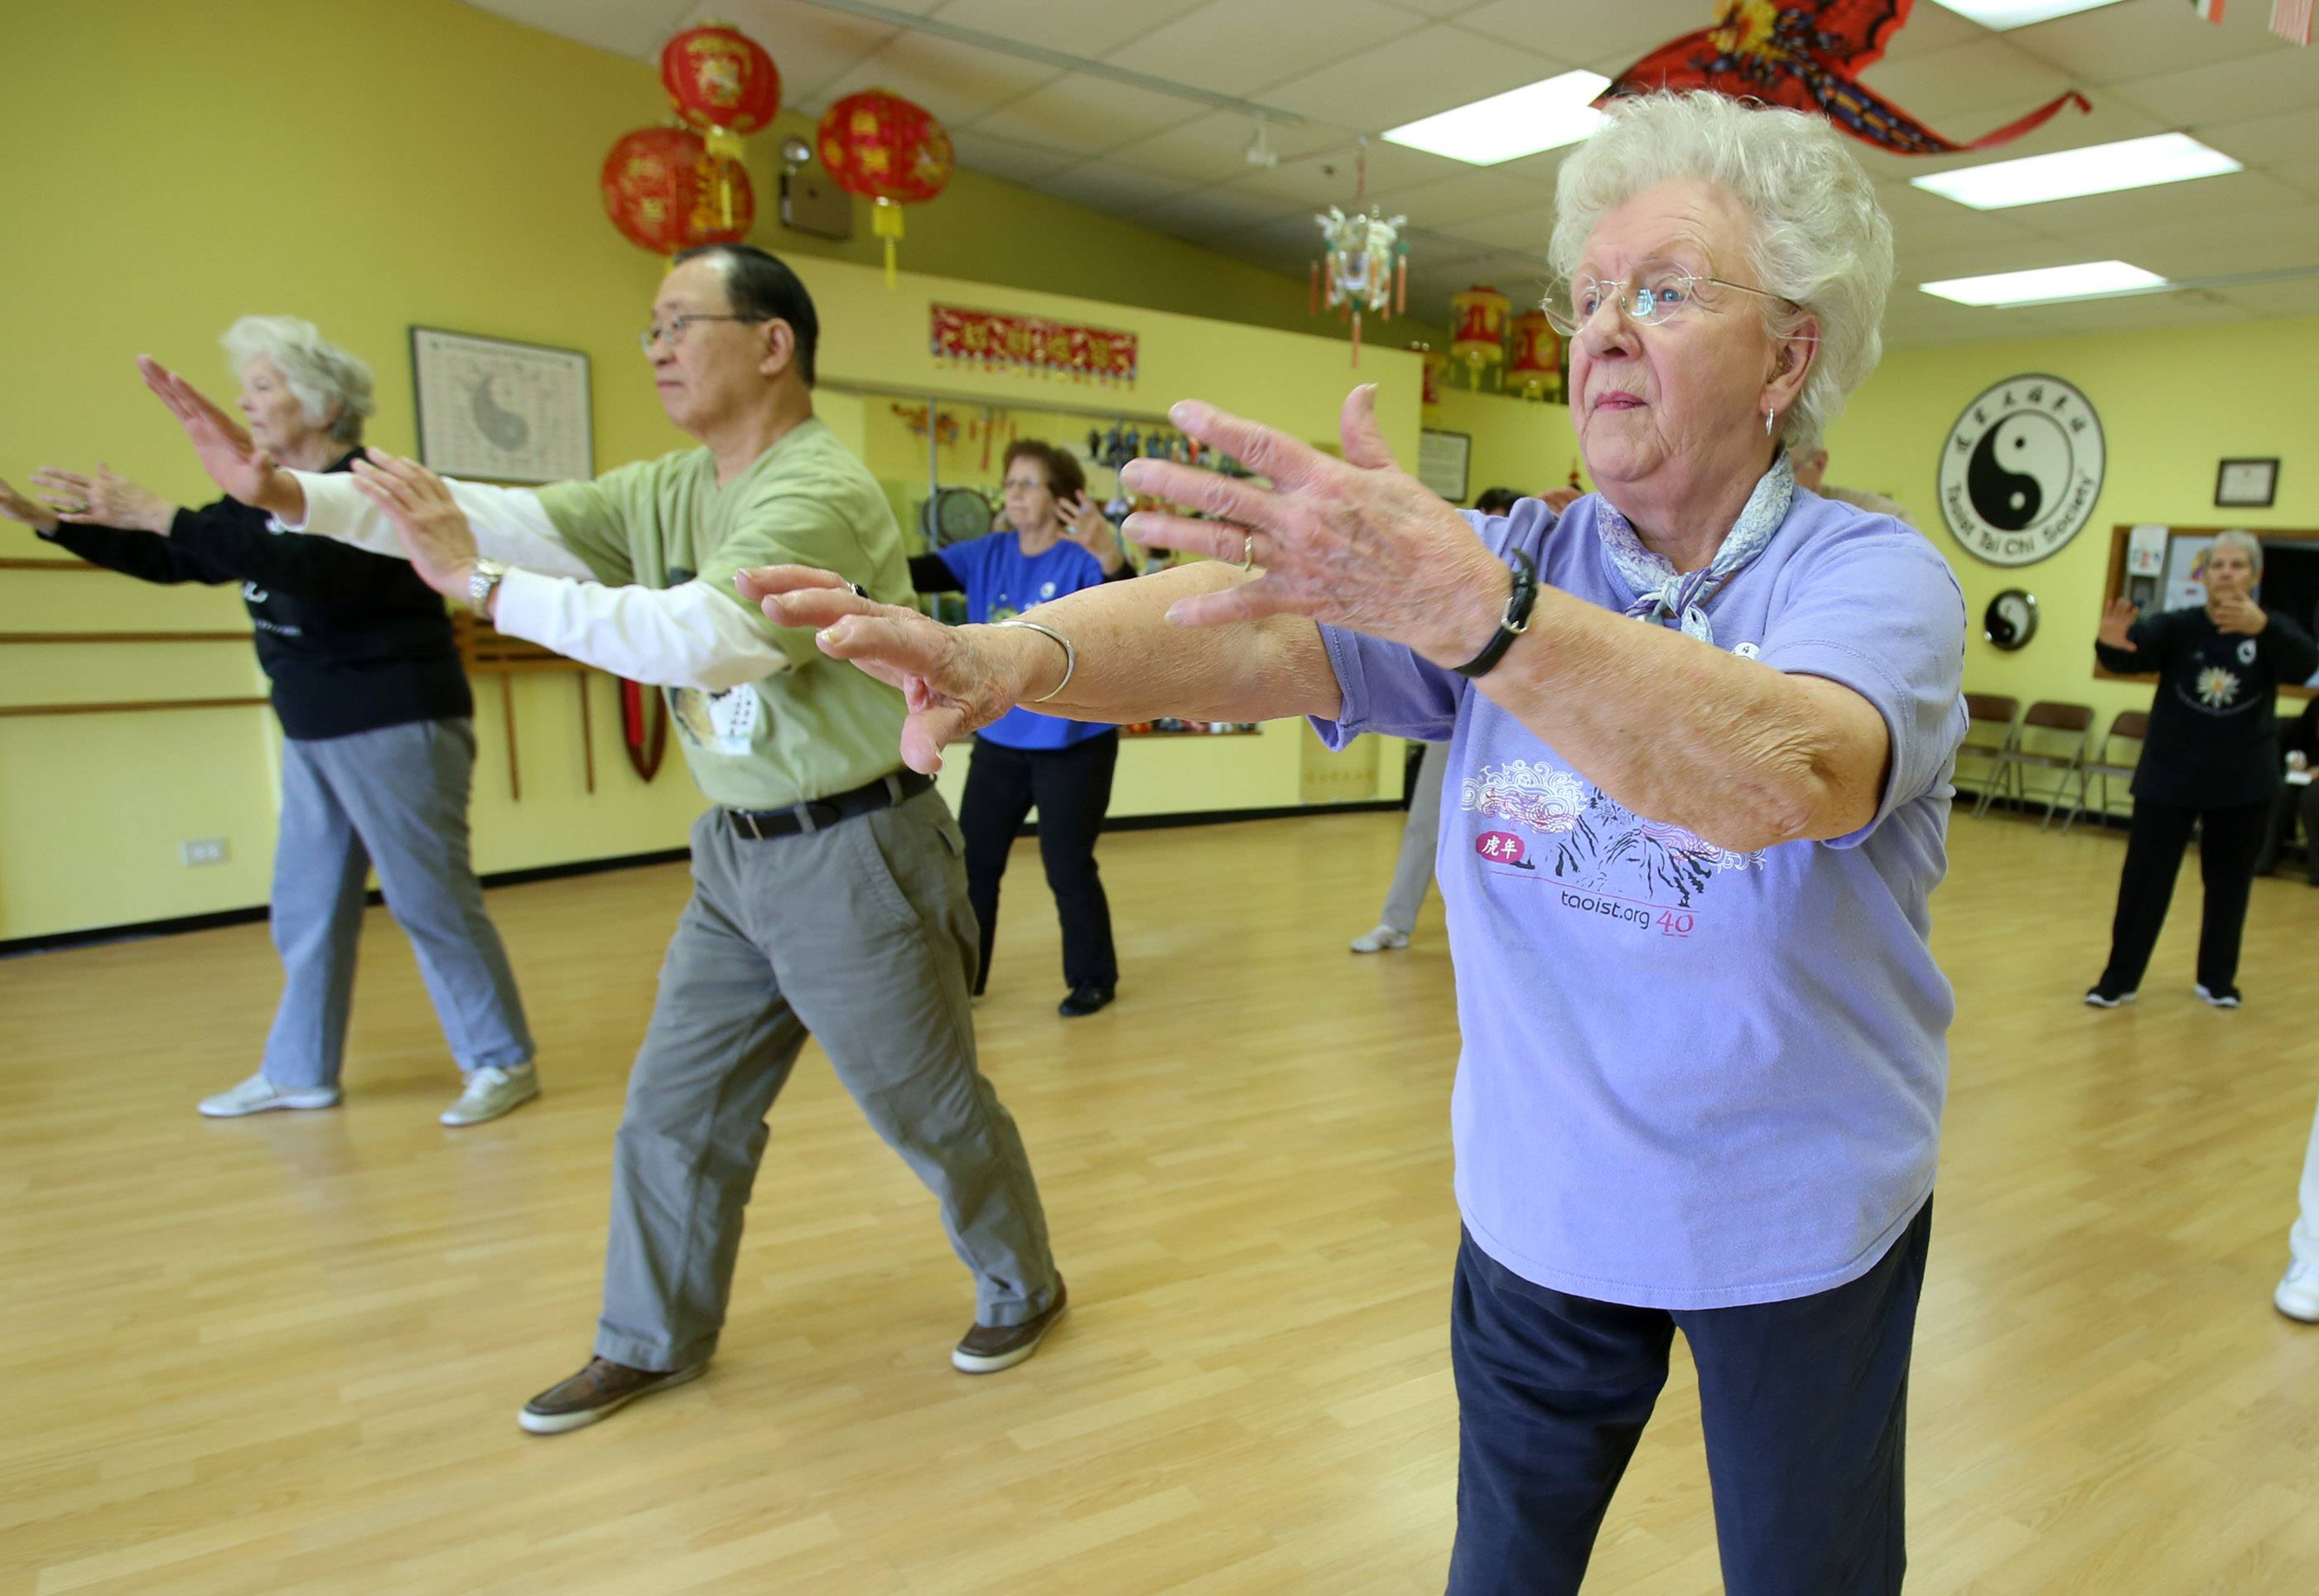 Maxine Kitts of Glenview takes a tai chi class at Taoist Tai Chi Center last year in Arlington Heights. Exercise programs such as tai chi can increase strength and improve balance.